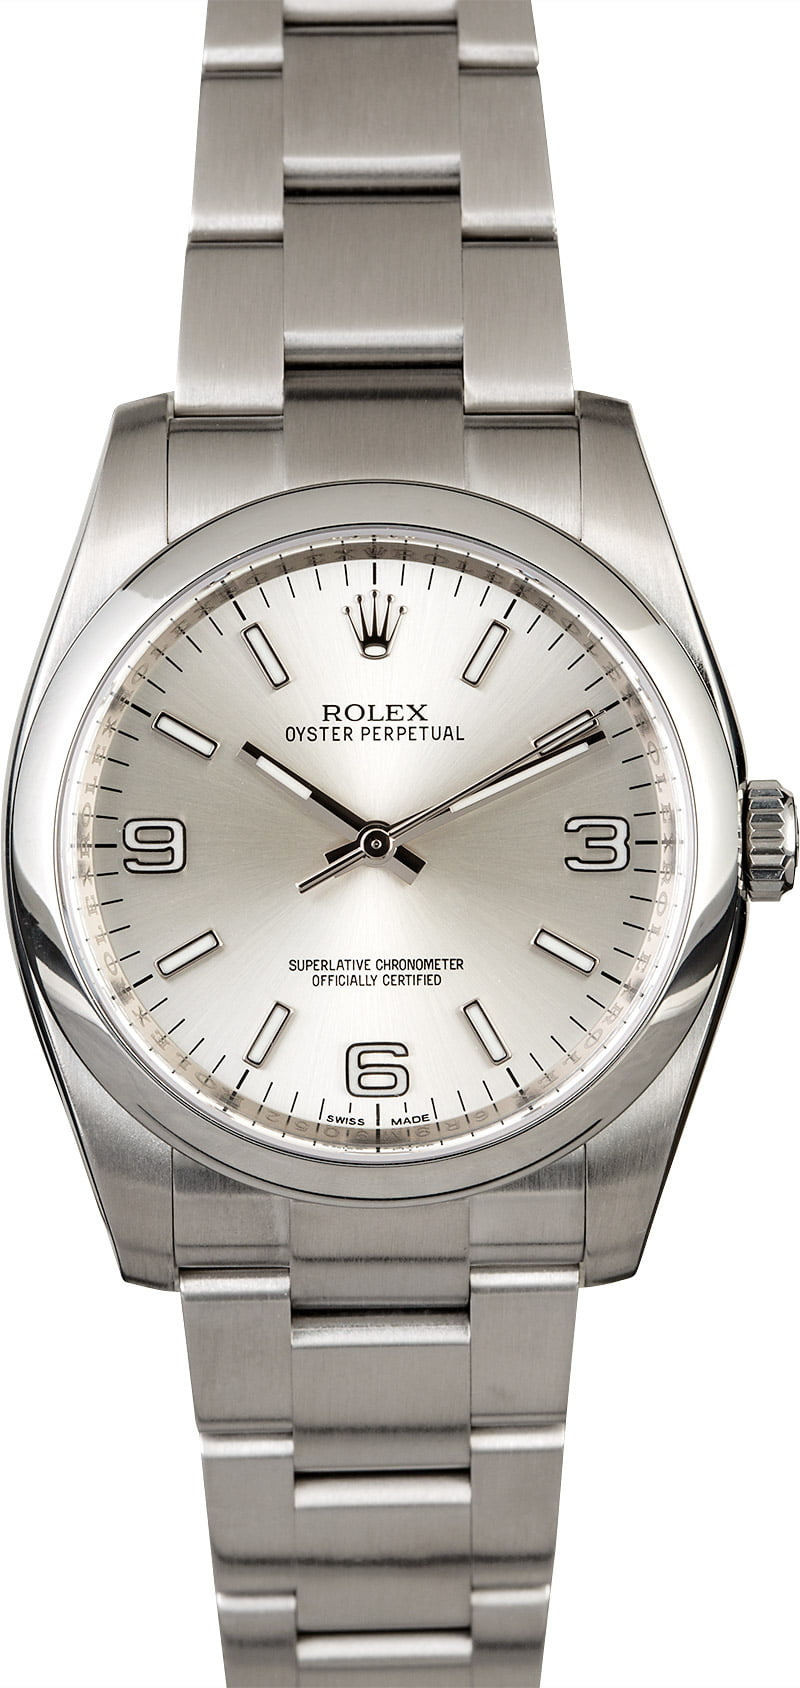 Rolex Used Oyster Perpetual 36mm in Steel with Smooth Bezel